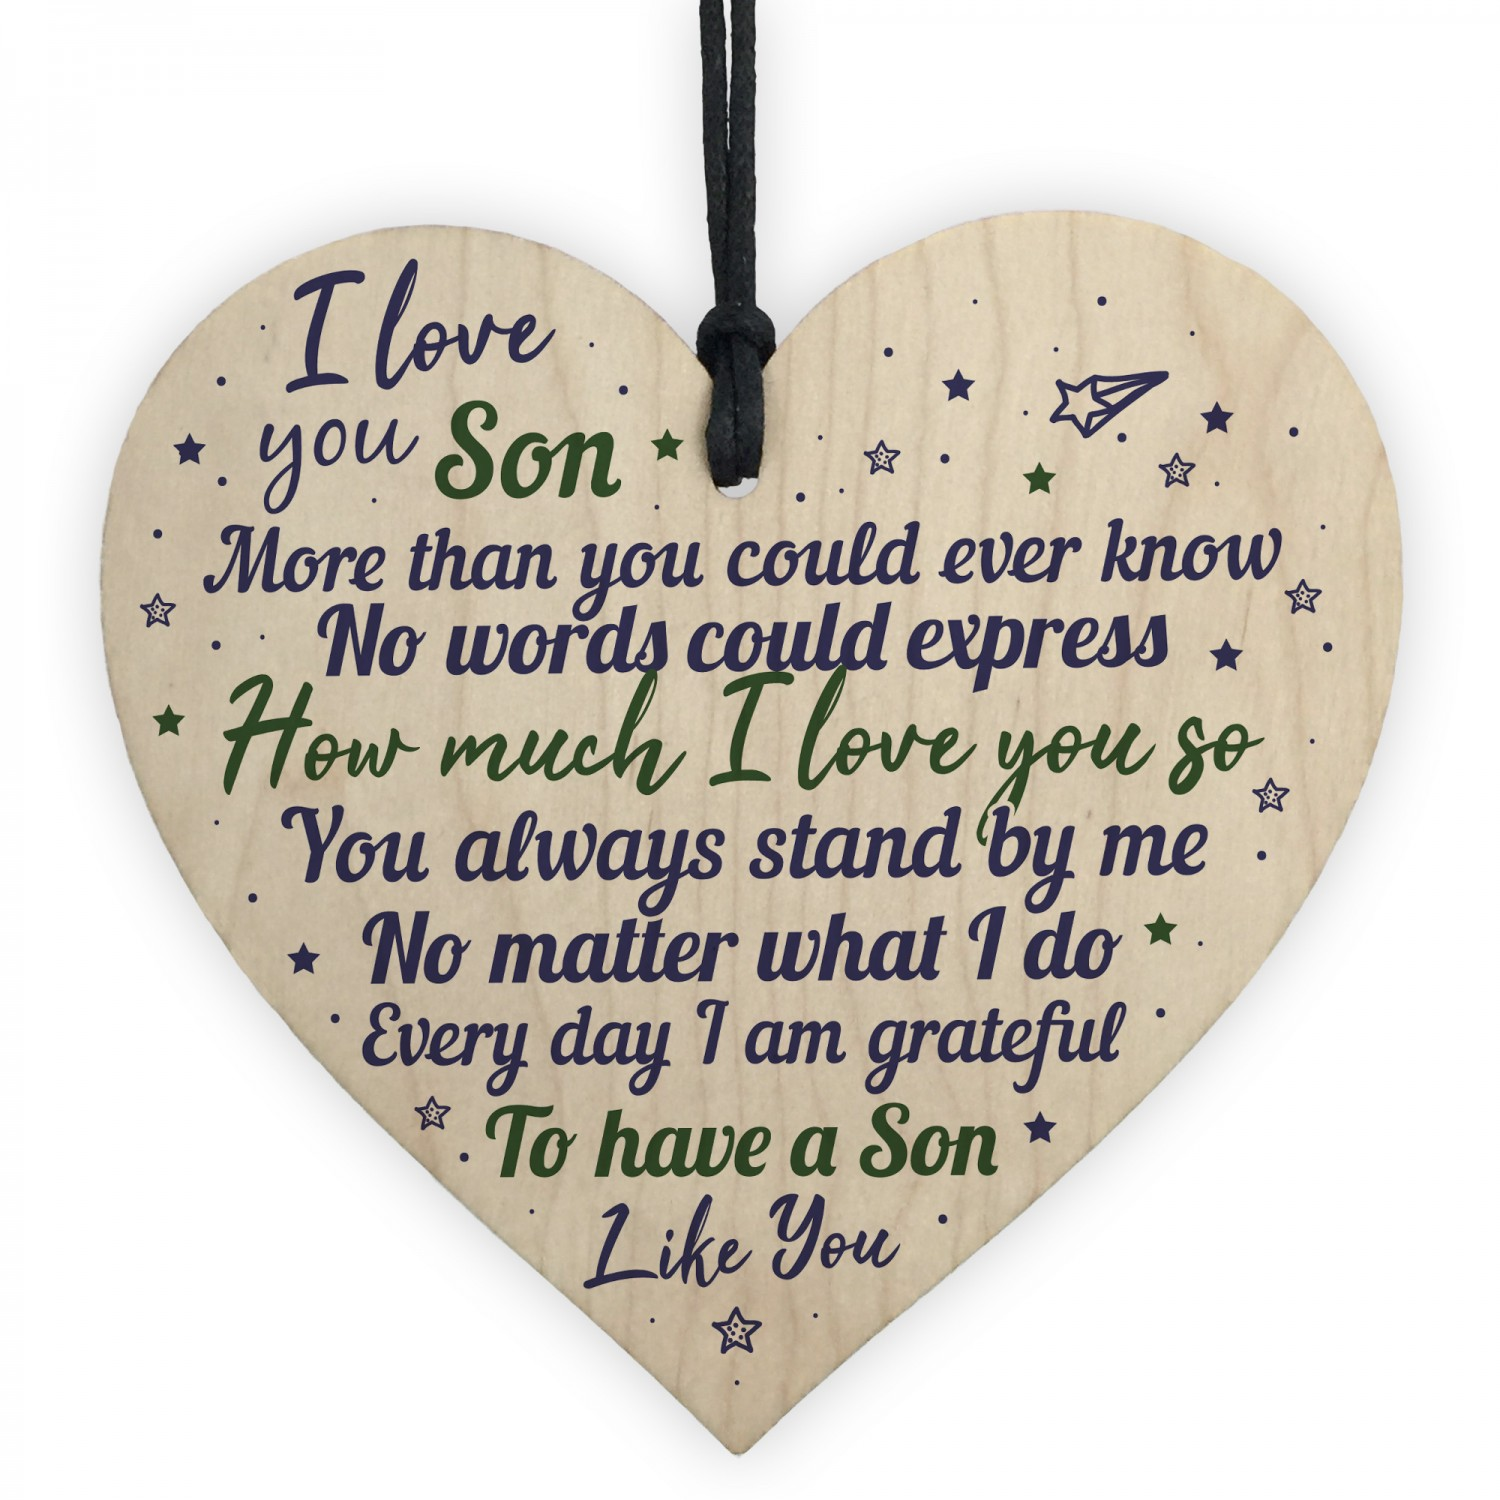 Mum Dad Christmas Birthday Gifts For Son Wood Hanging Heart Gift